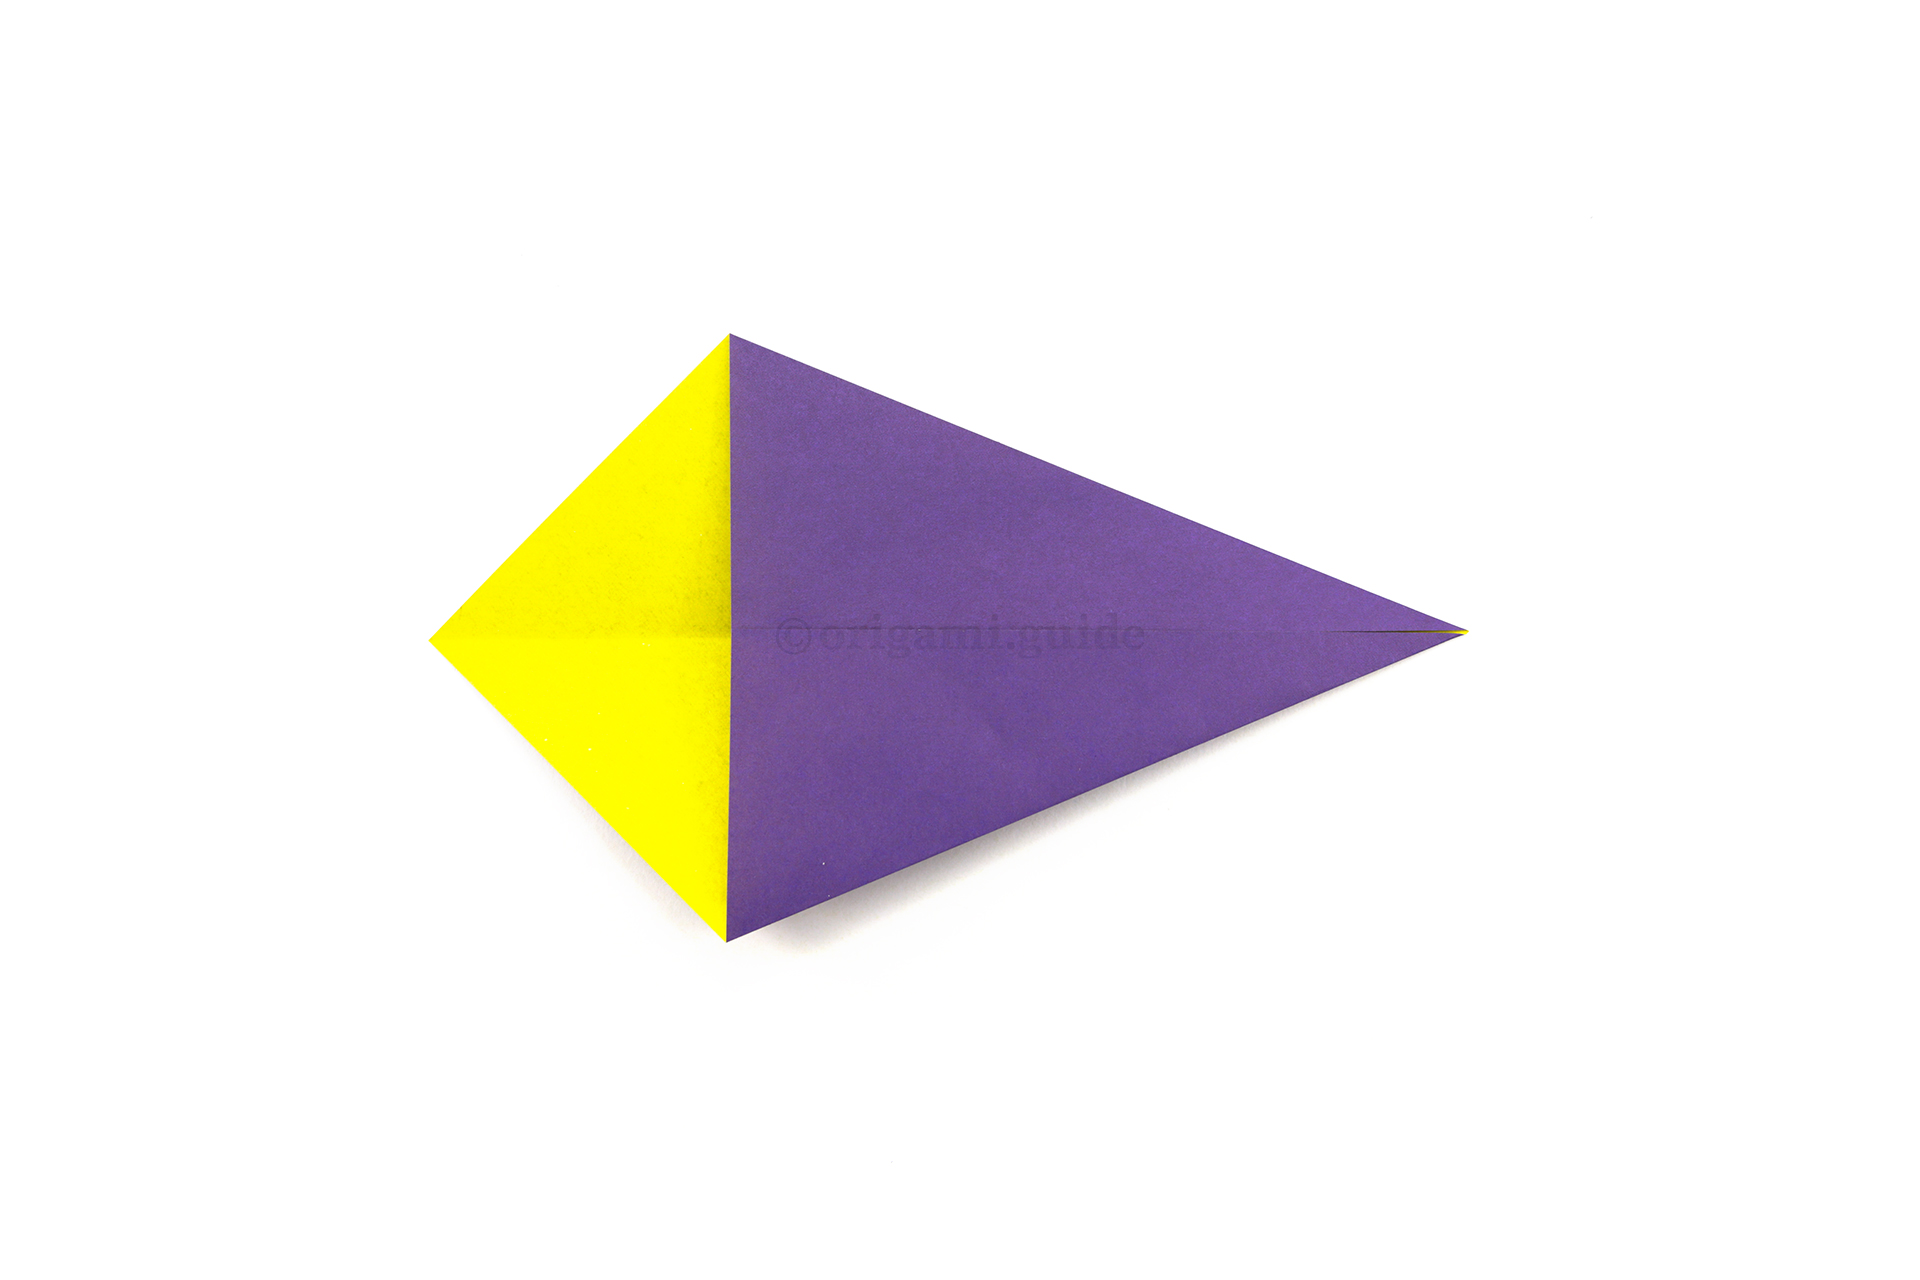 3d easy origami for kids: origami kite instructions   1280x1920